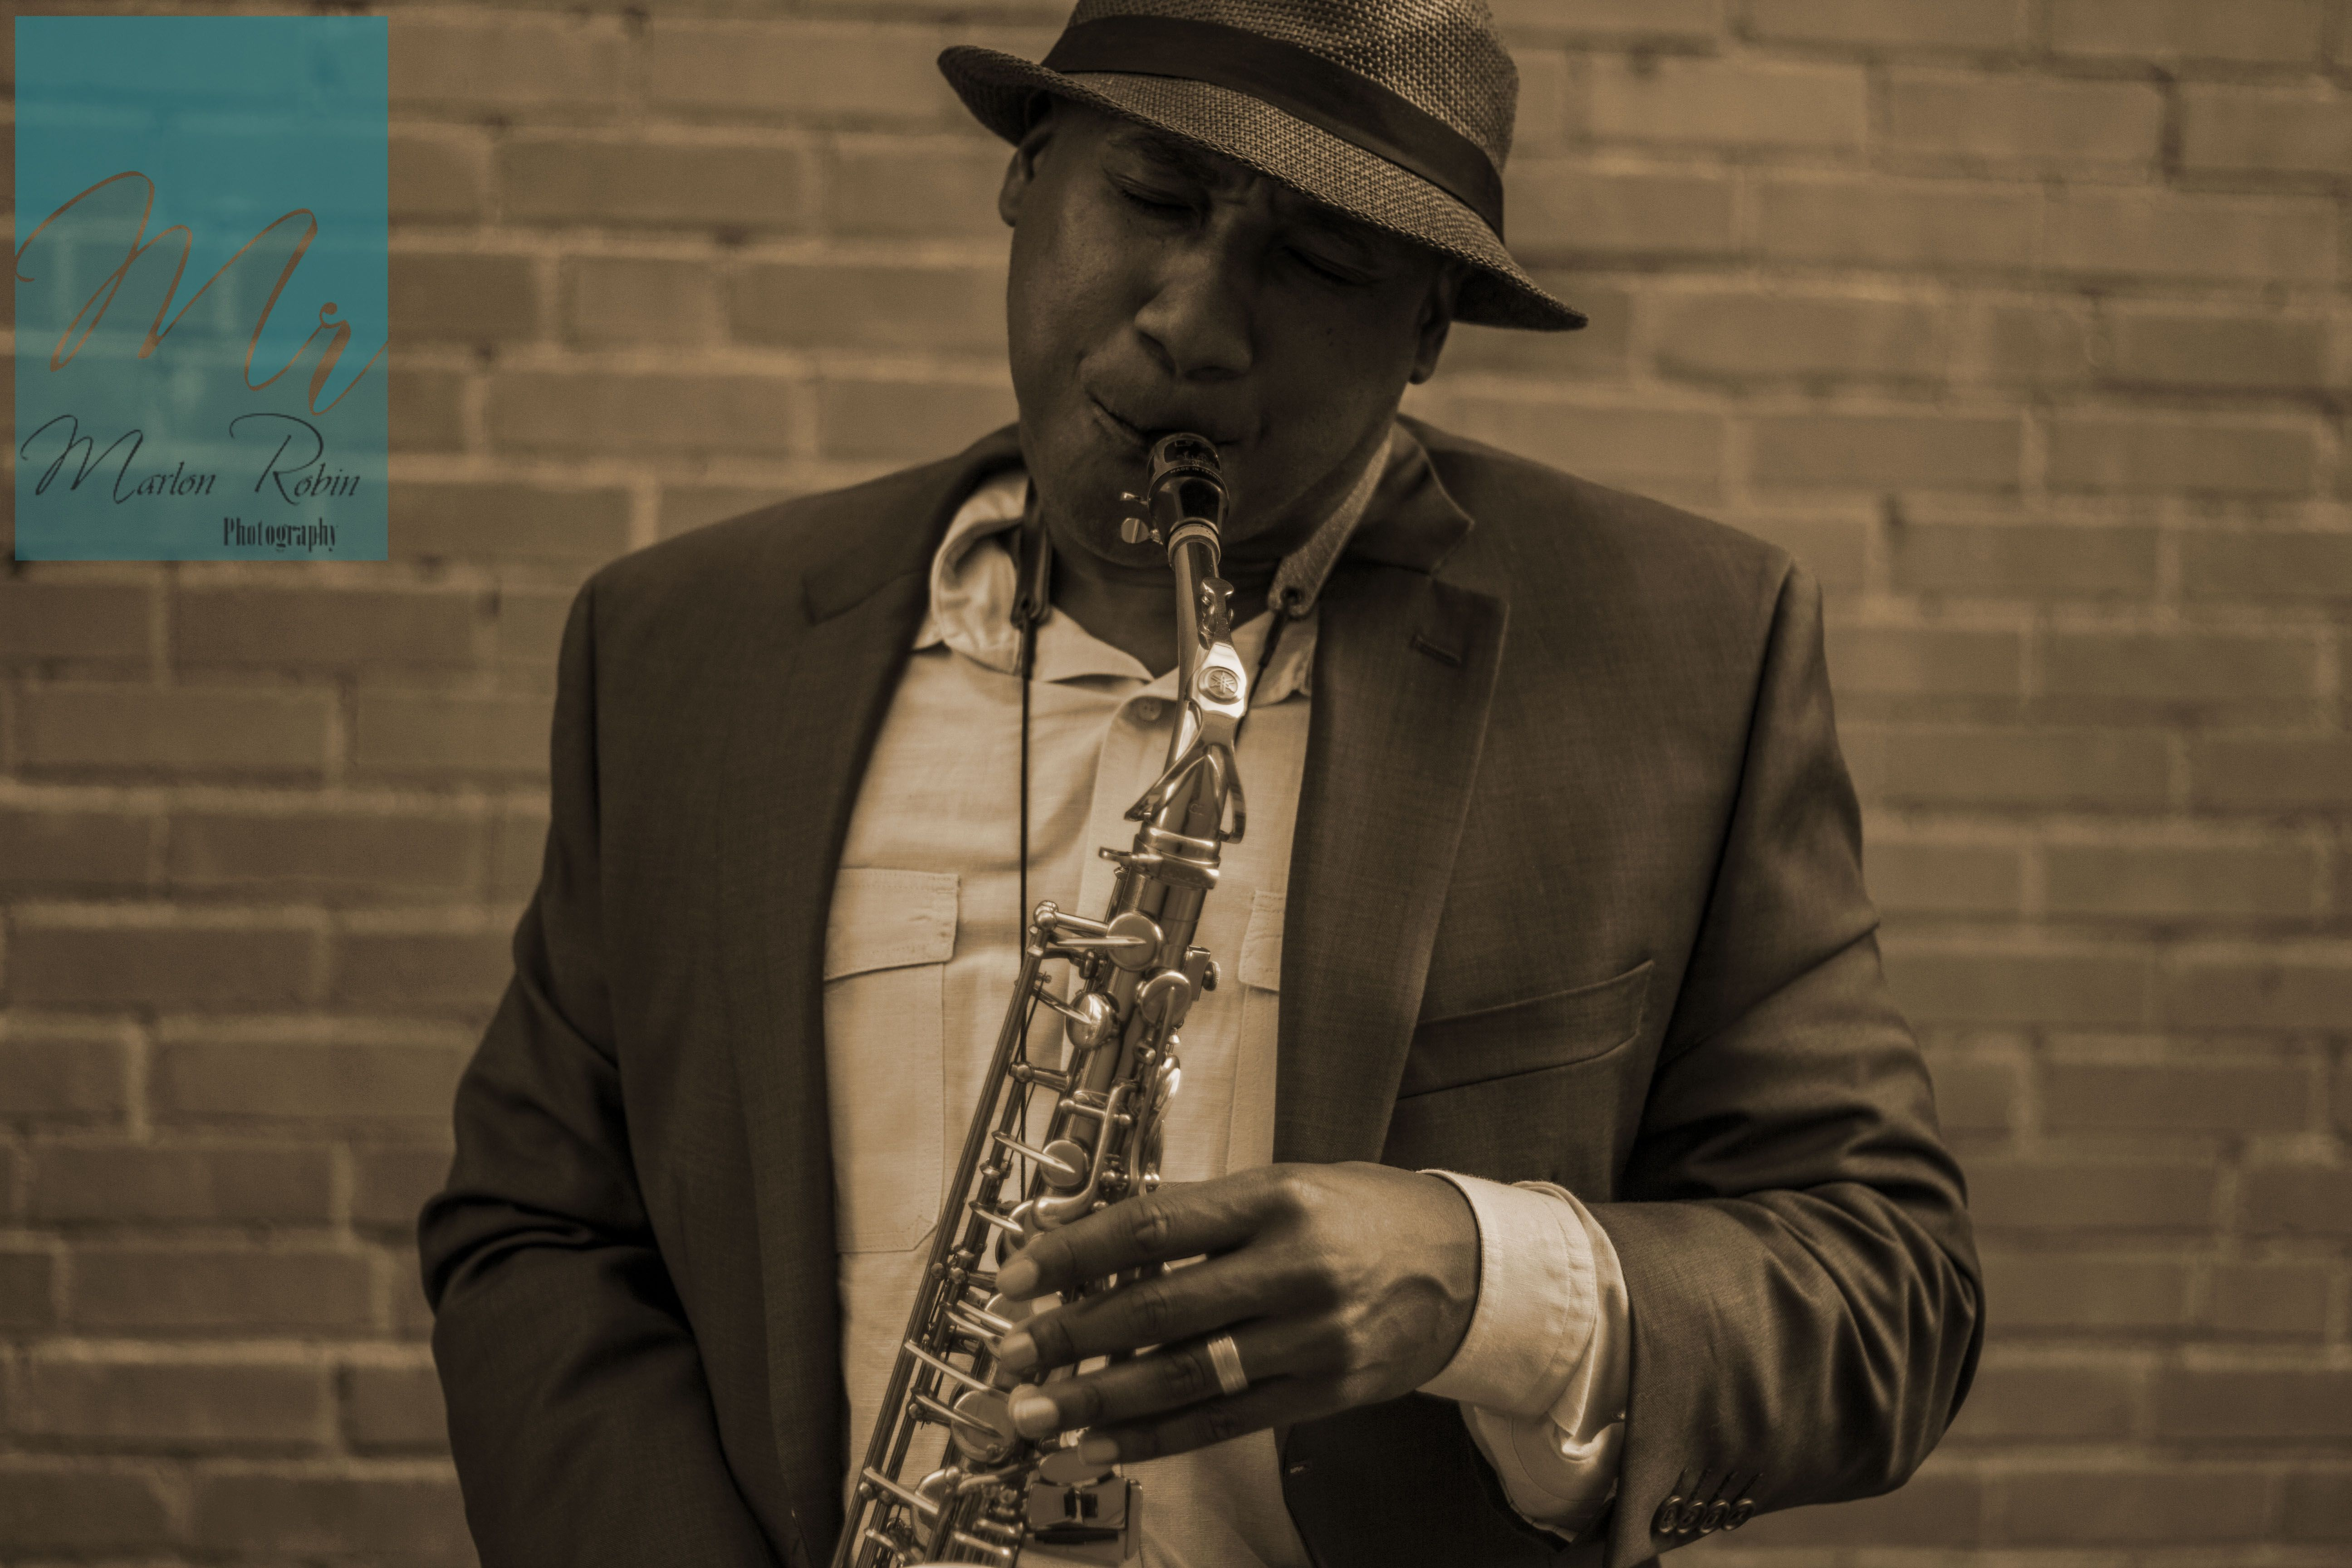 Saxophone portrait. Loved this picture. Gave me a 1930 jazz vibe.